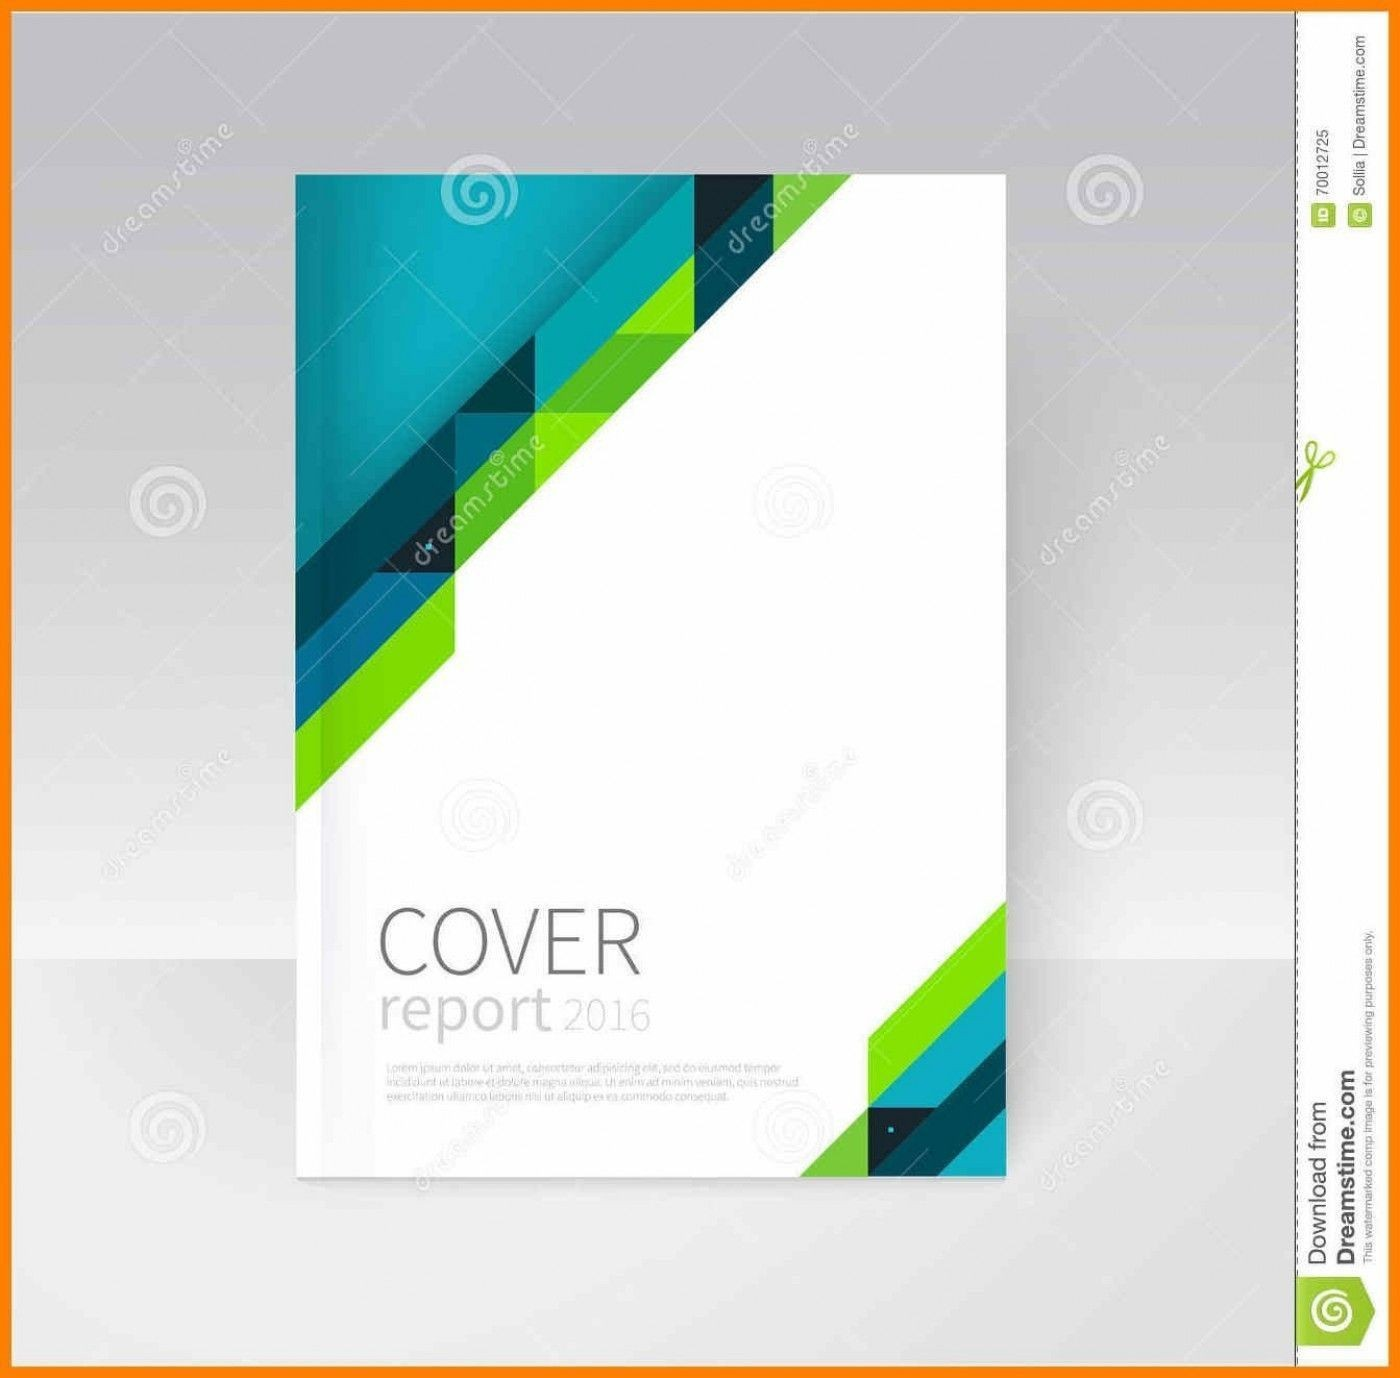 008 Beautiful Free Download Annual Report Cover Design Template Picture  In Word Page1400